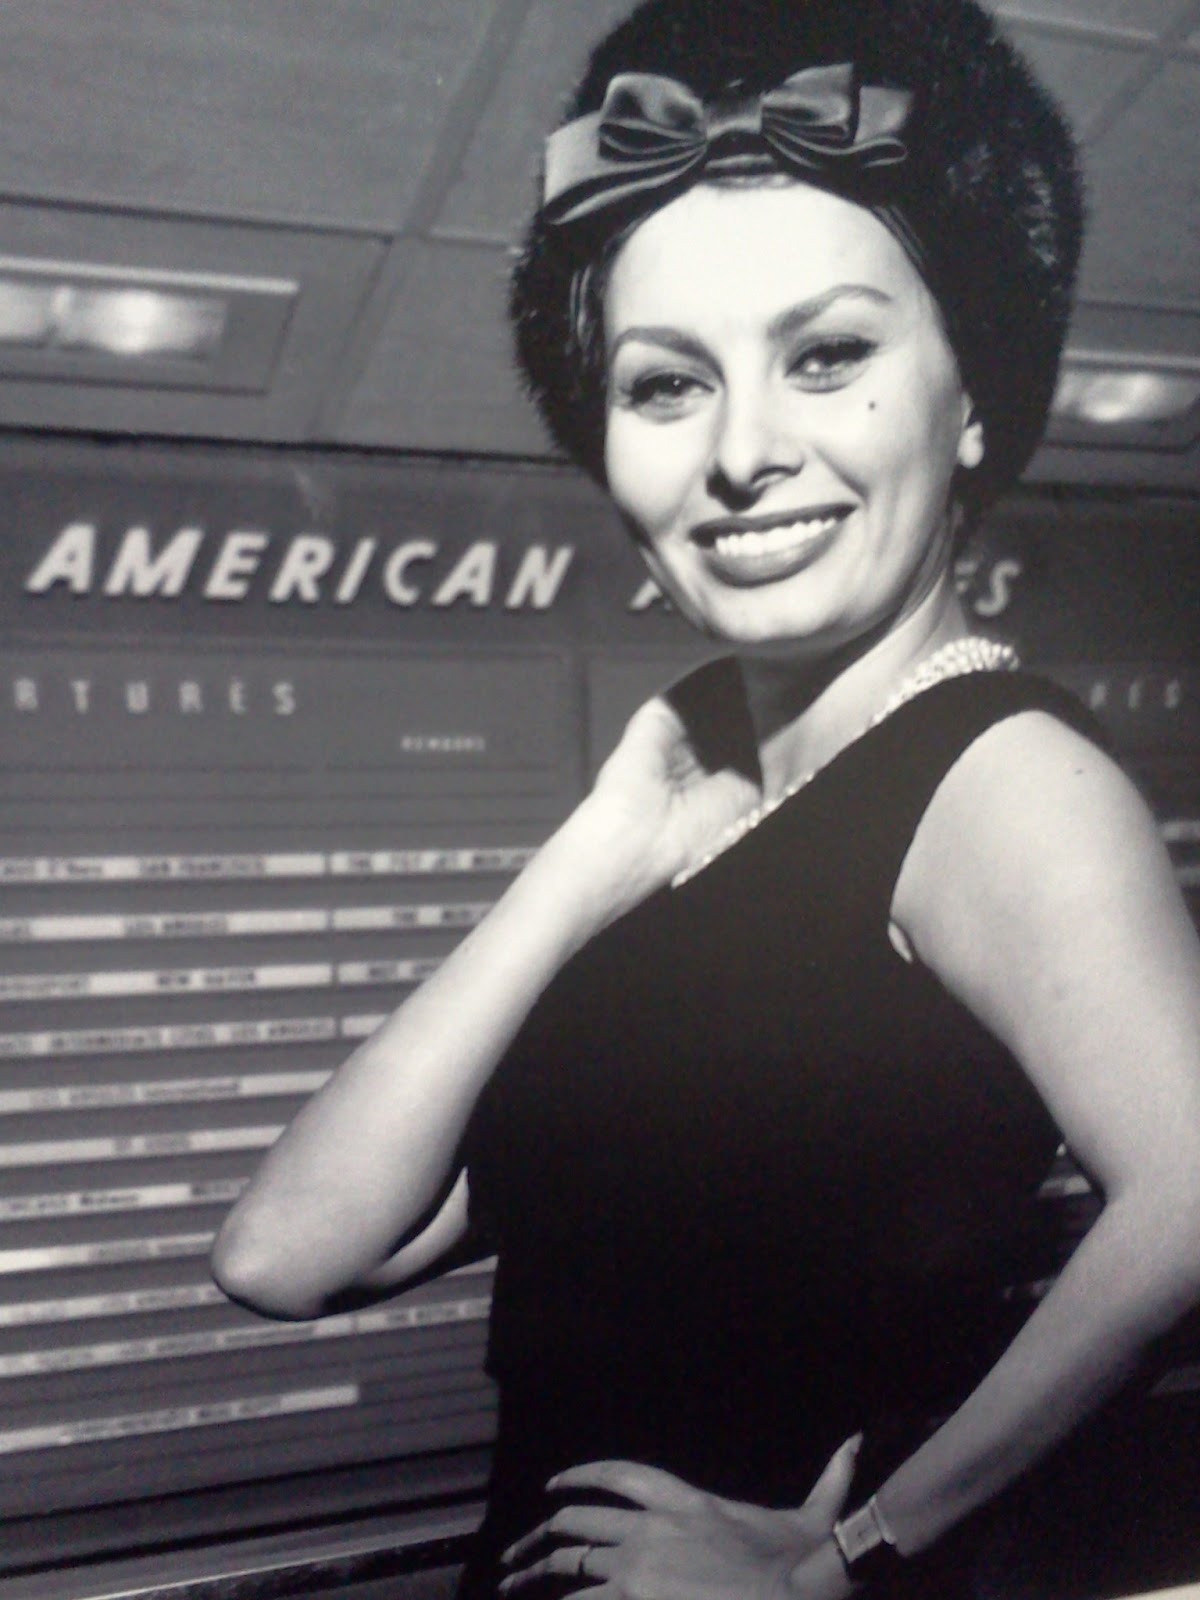 Sophia Loren on American Airlines from C. R. Smith Museum